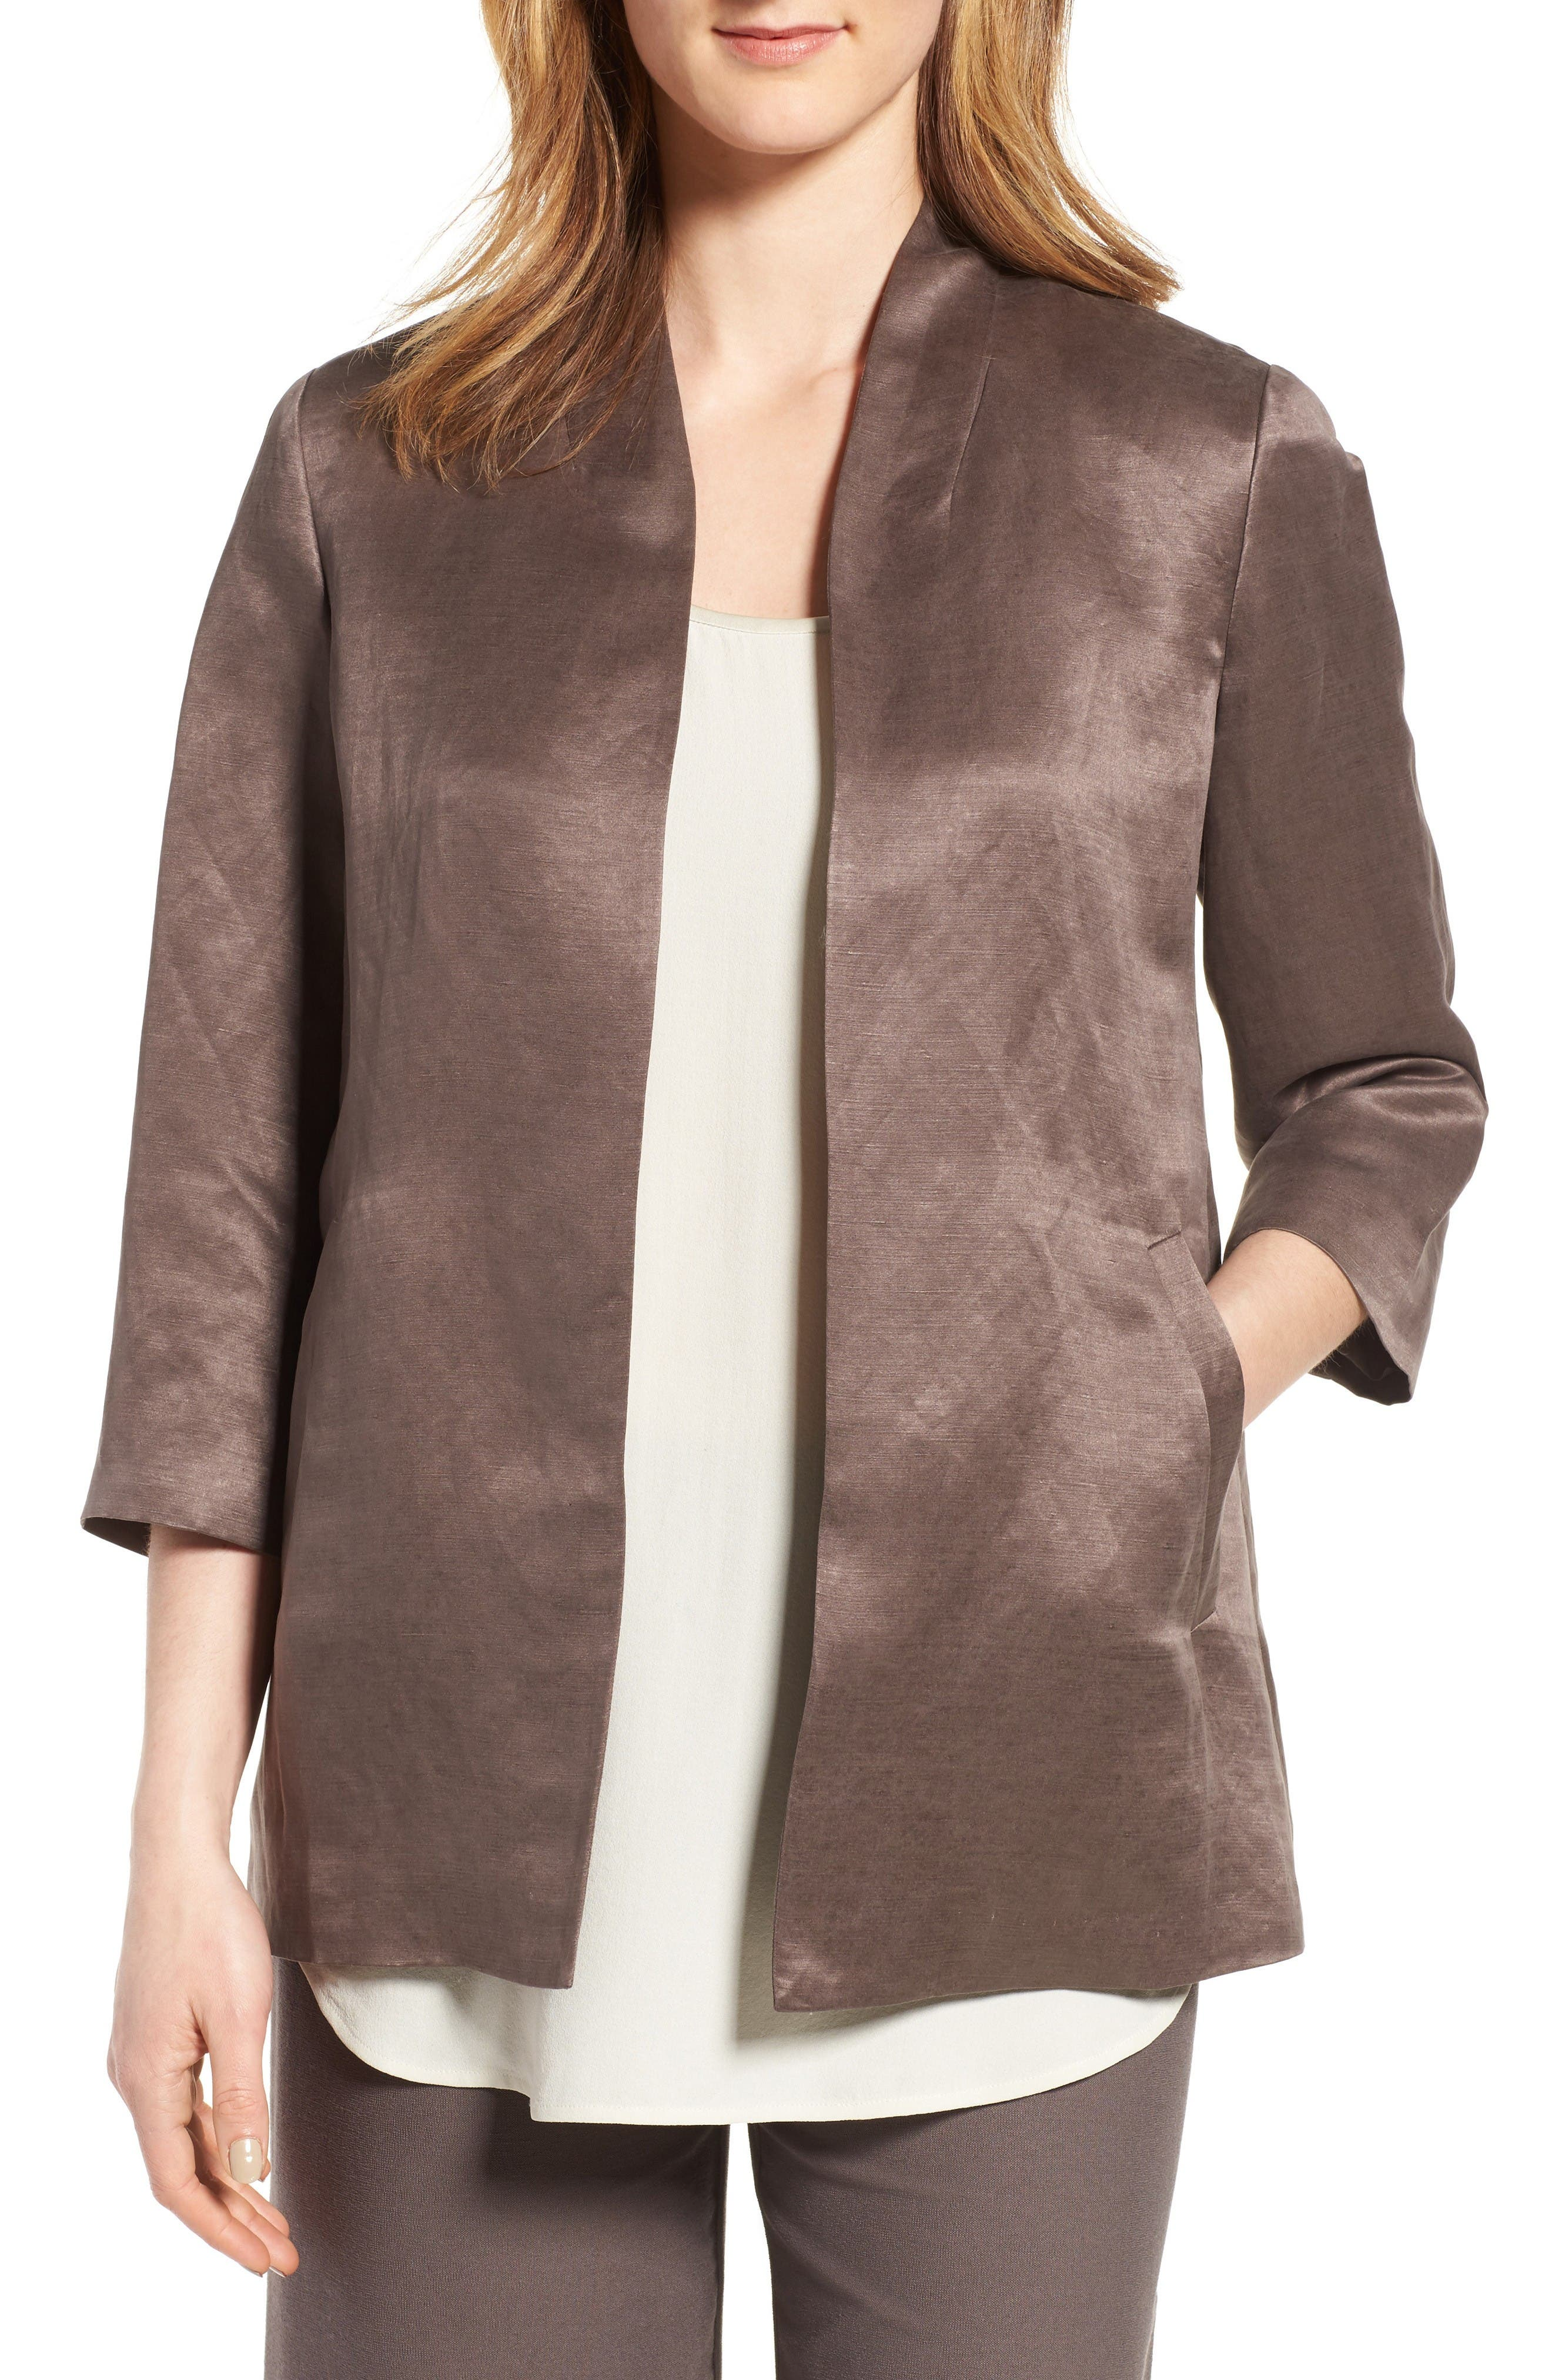 Eileen Fisher Organic Linen & Silk Jacket (Regular & Petite)